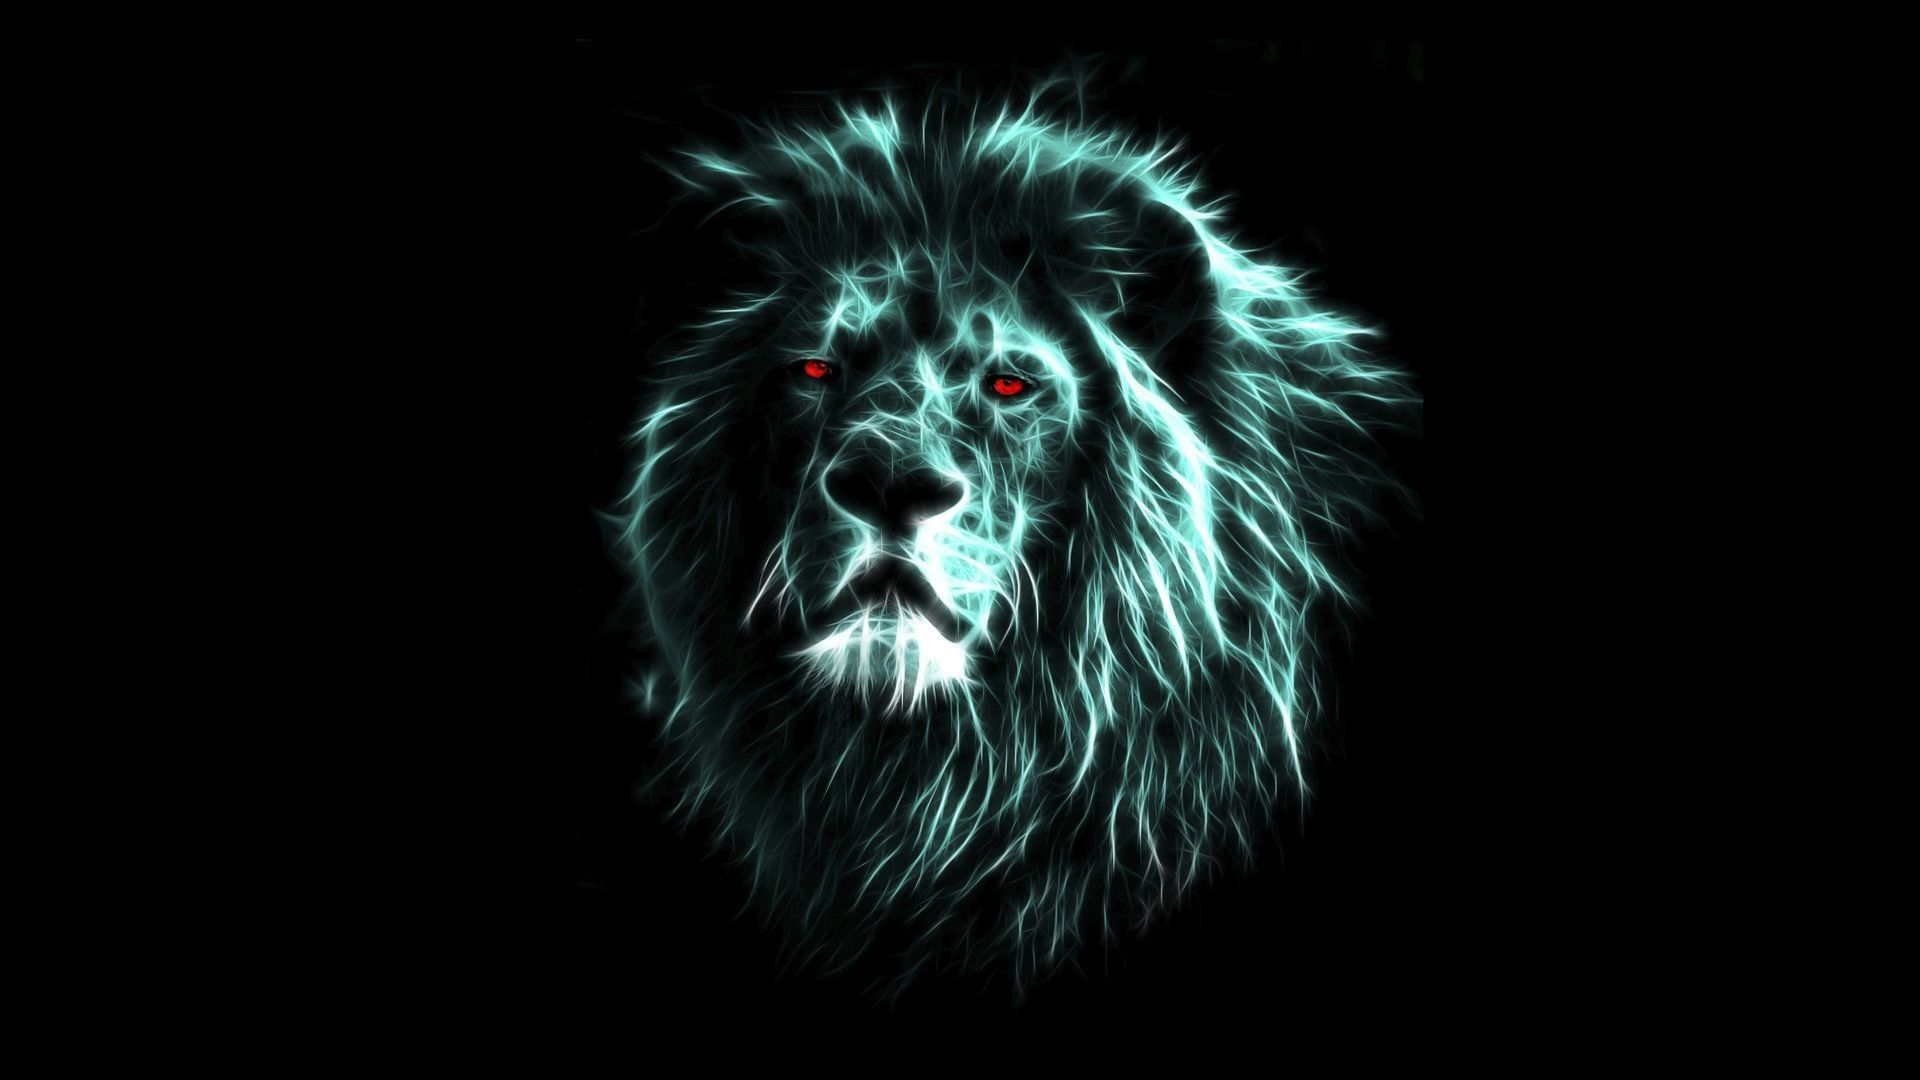 Amazing Lion Wallpapers Top Free Amazing Lion Backgrounds